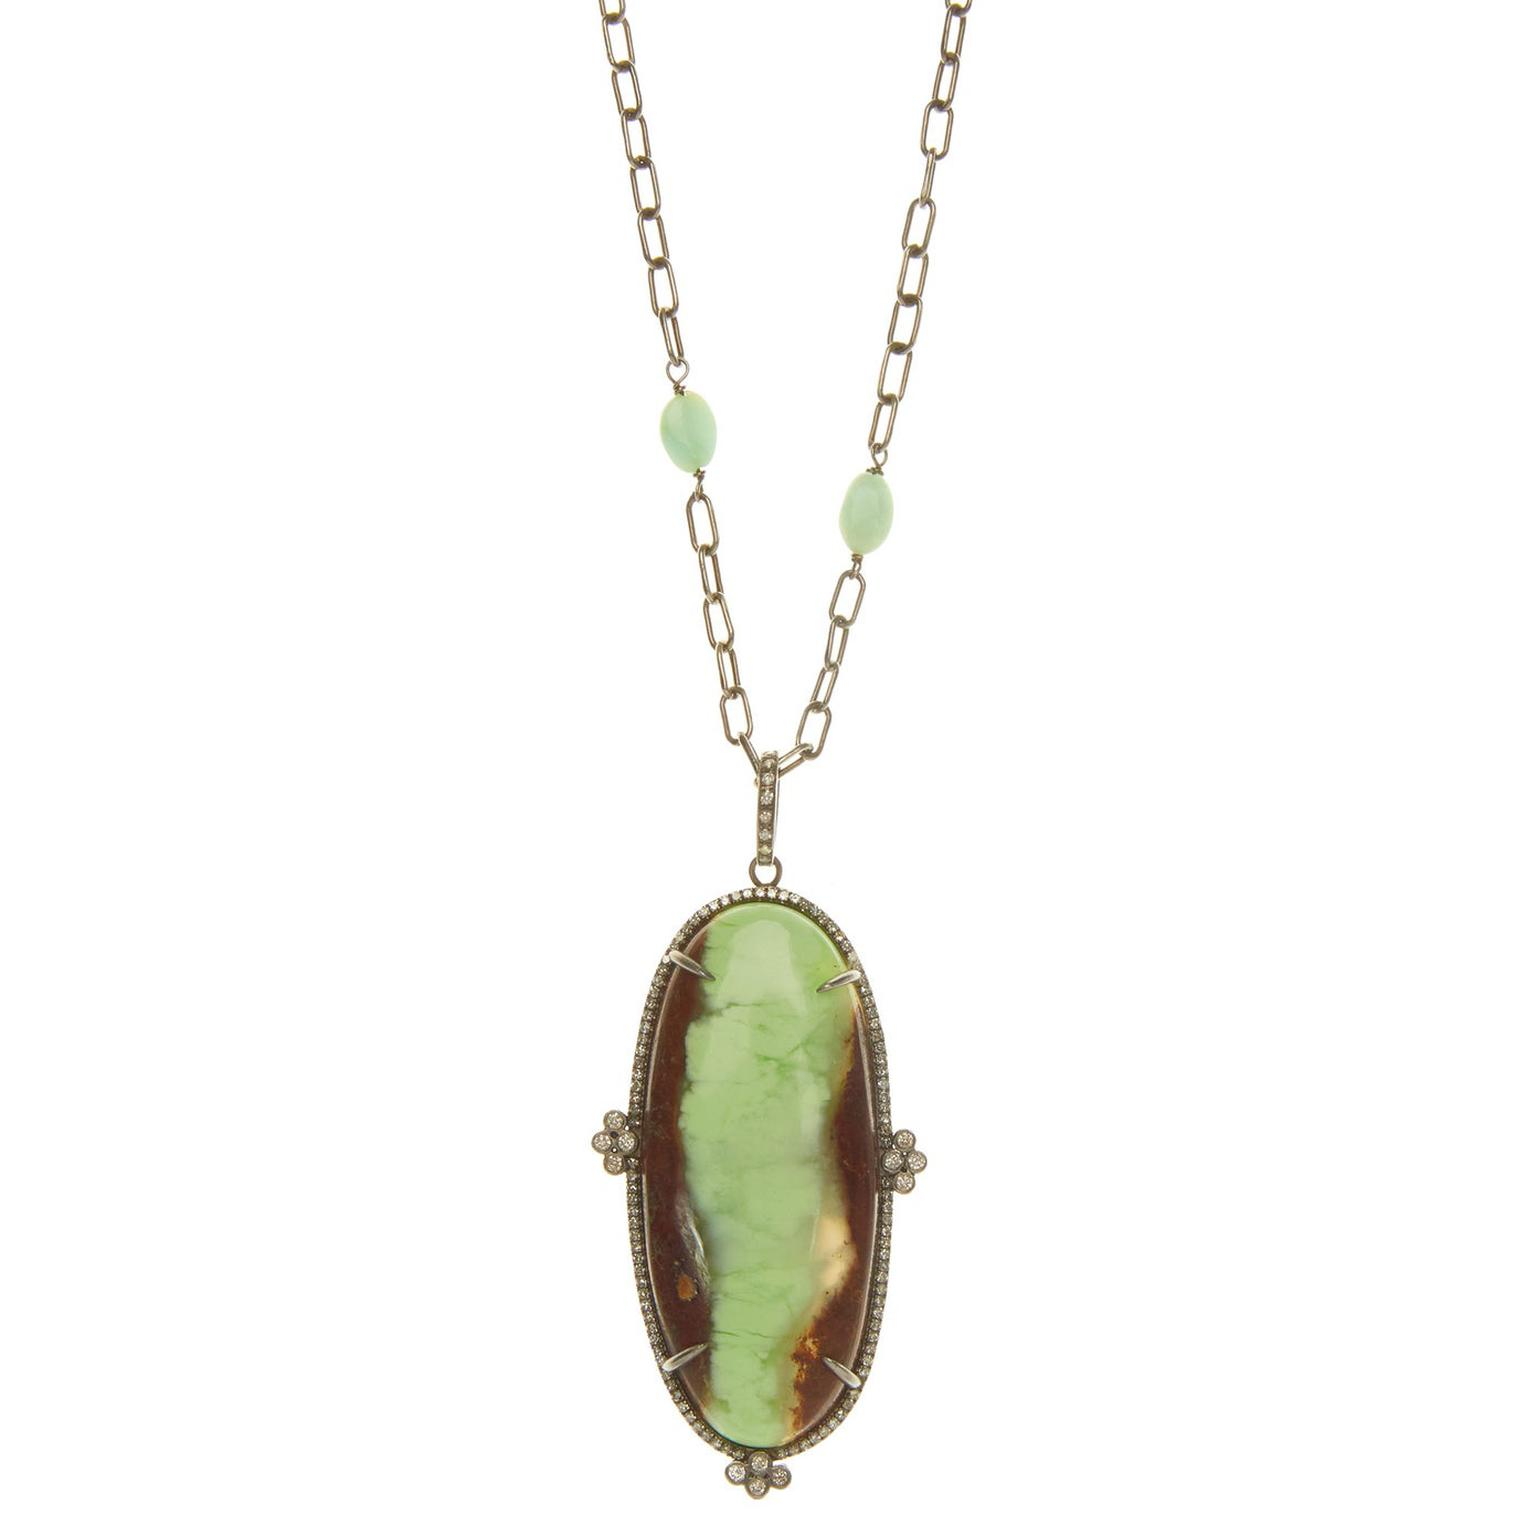 Ileana Makri chrysoprase necklace